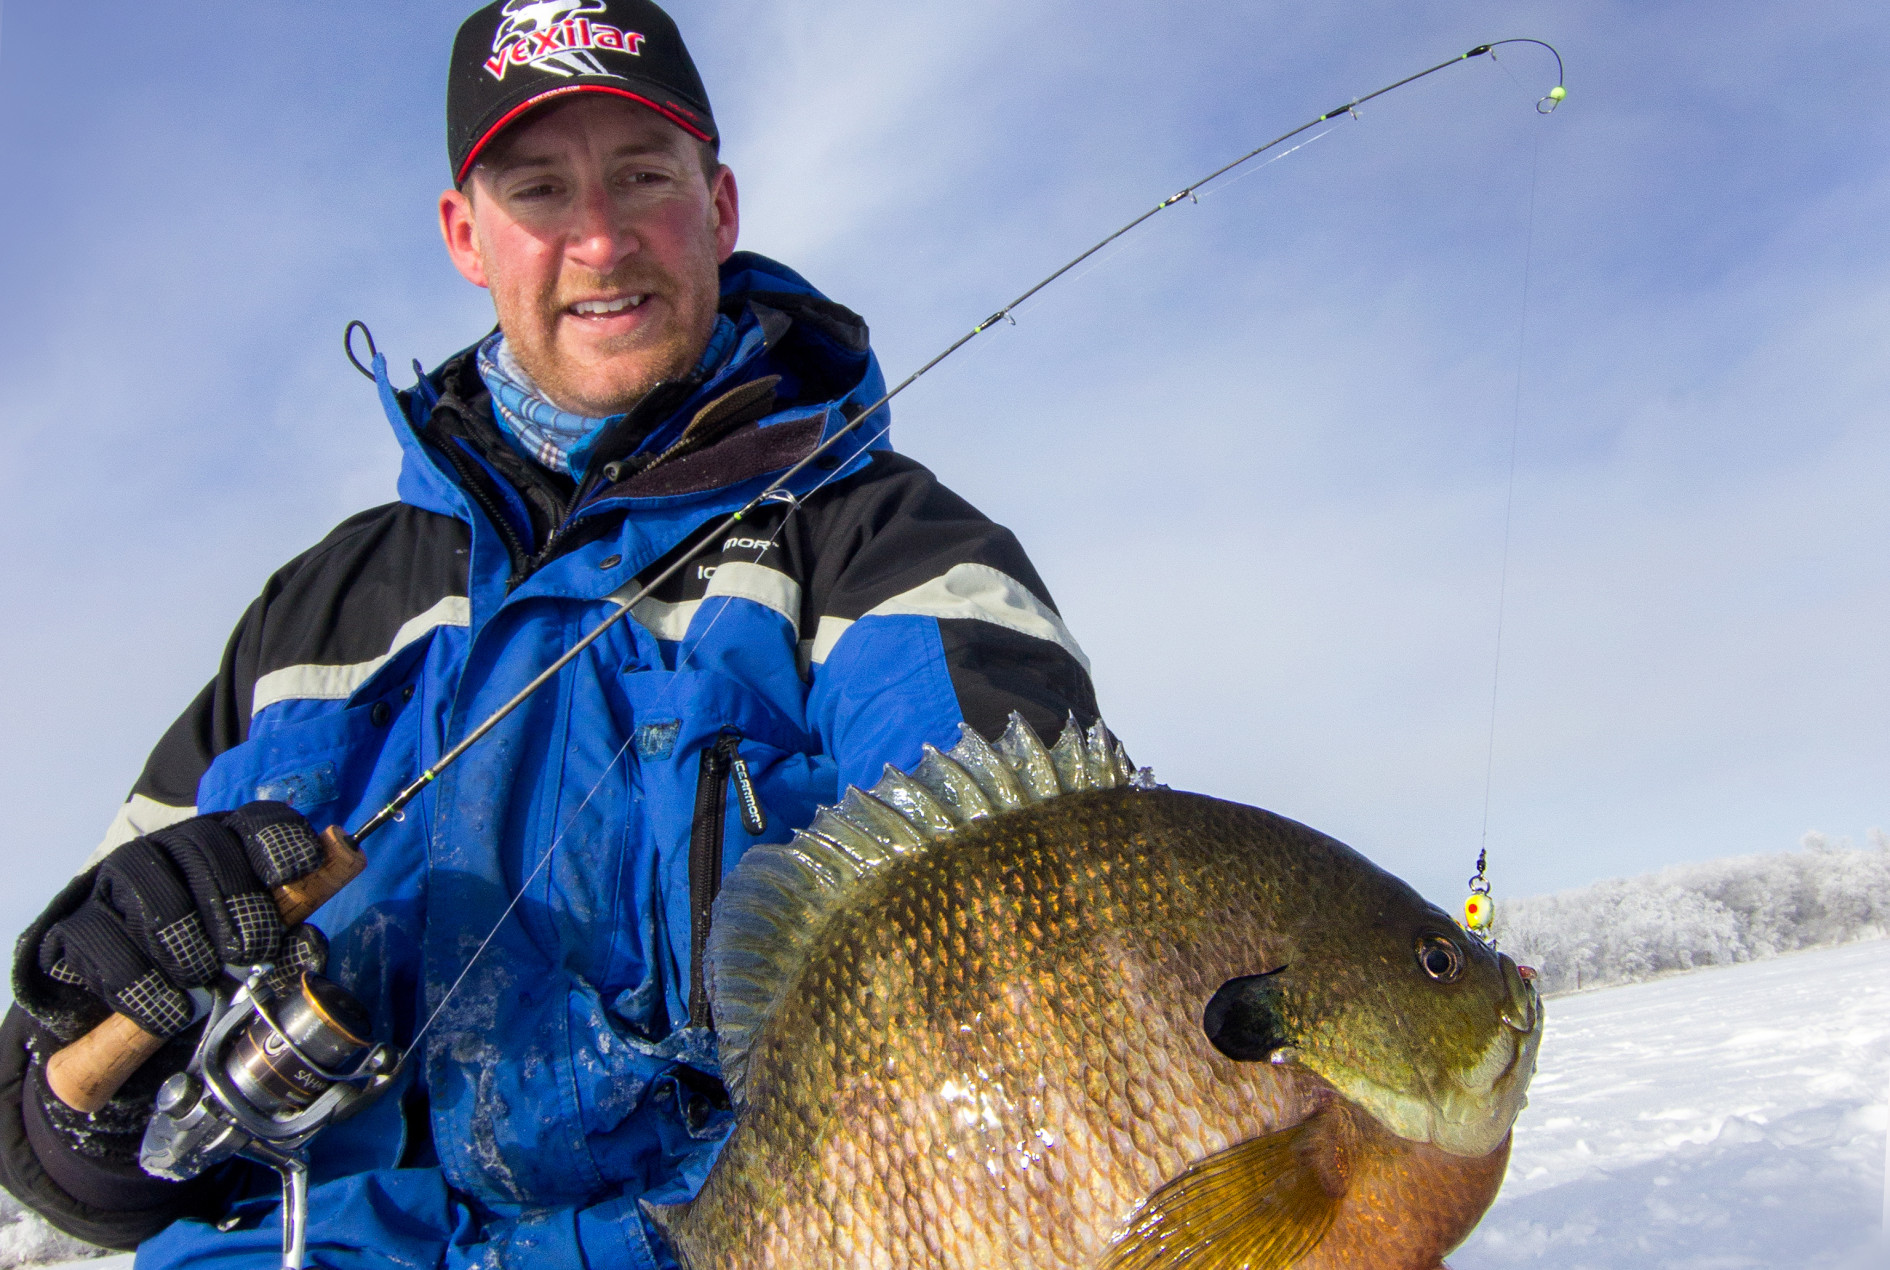 Minnesota bluegill ice fishing guide